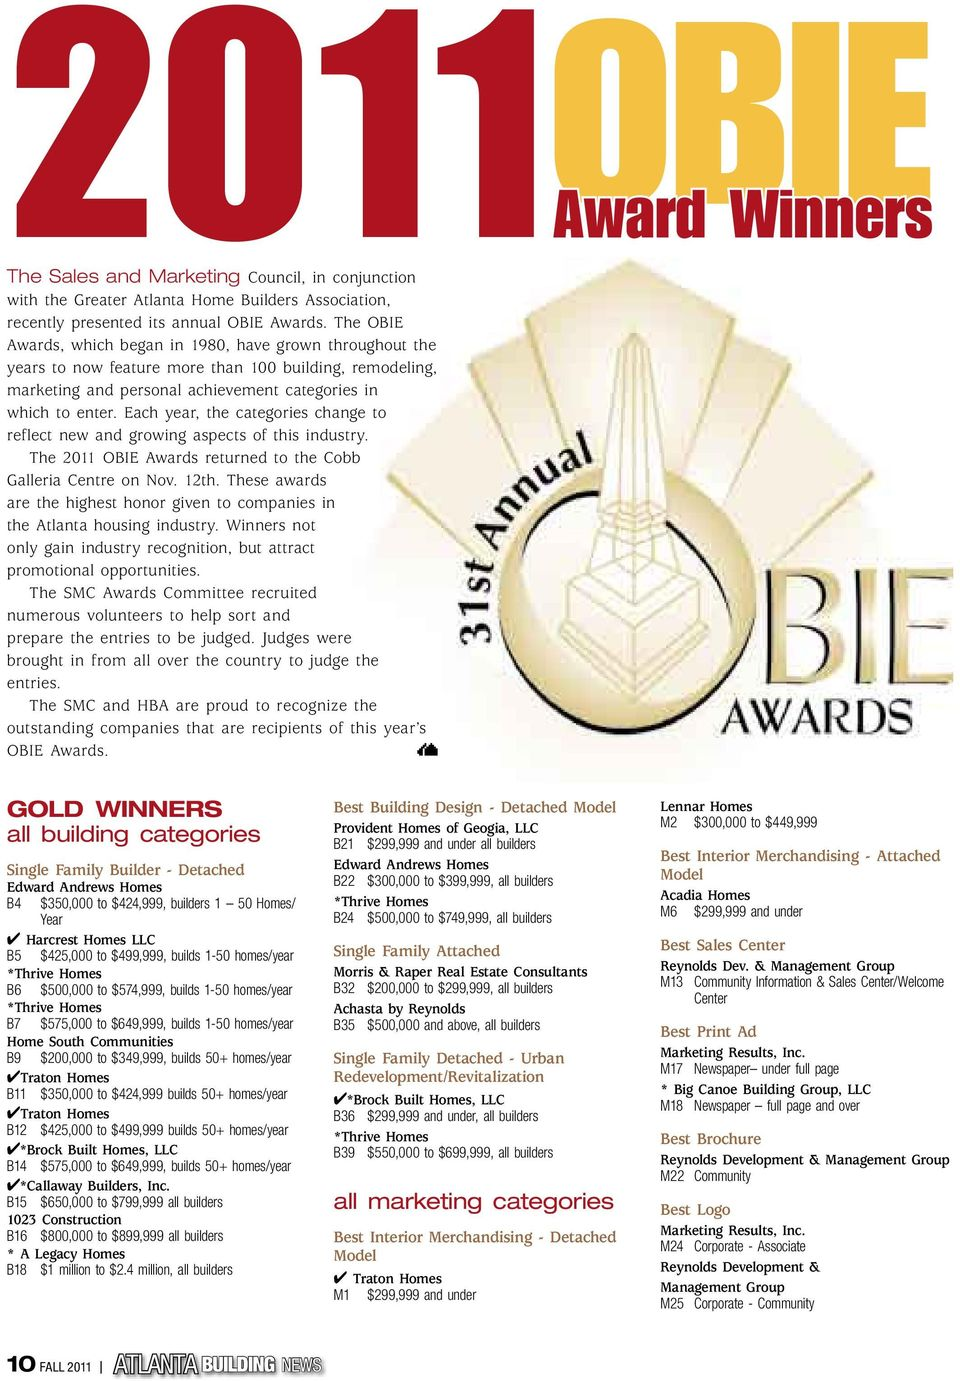 Each year, the categories change to reflect new and growing aspects of this industry. The 2011 OBIE Awards returned to the Cobb Galleria Centre on Nov. 12th.